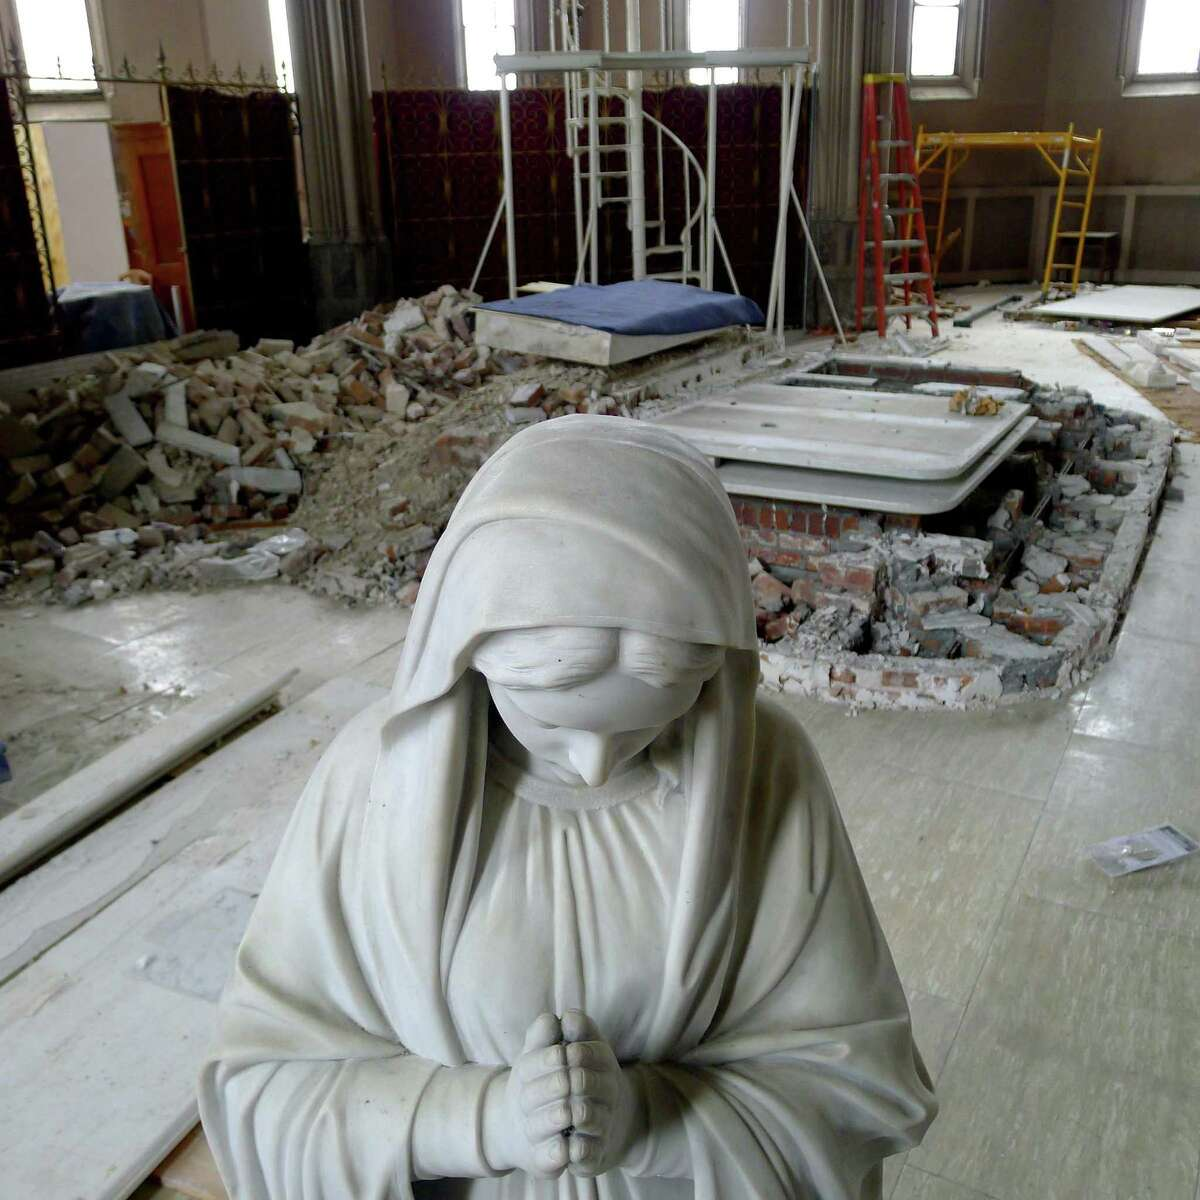 Religious icons being salvaged from St. Patrick's Church in Watervliet N.Y. Friday April 27, 2012. (Michael P. Farrell/Times Union)